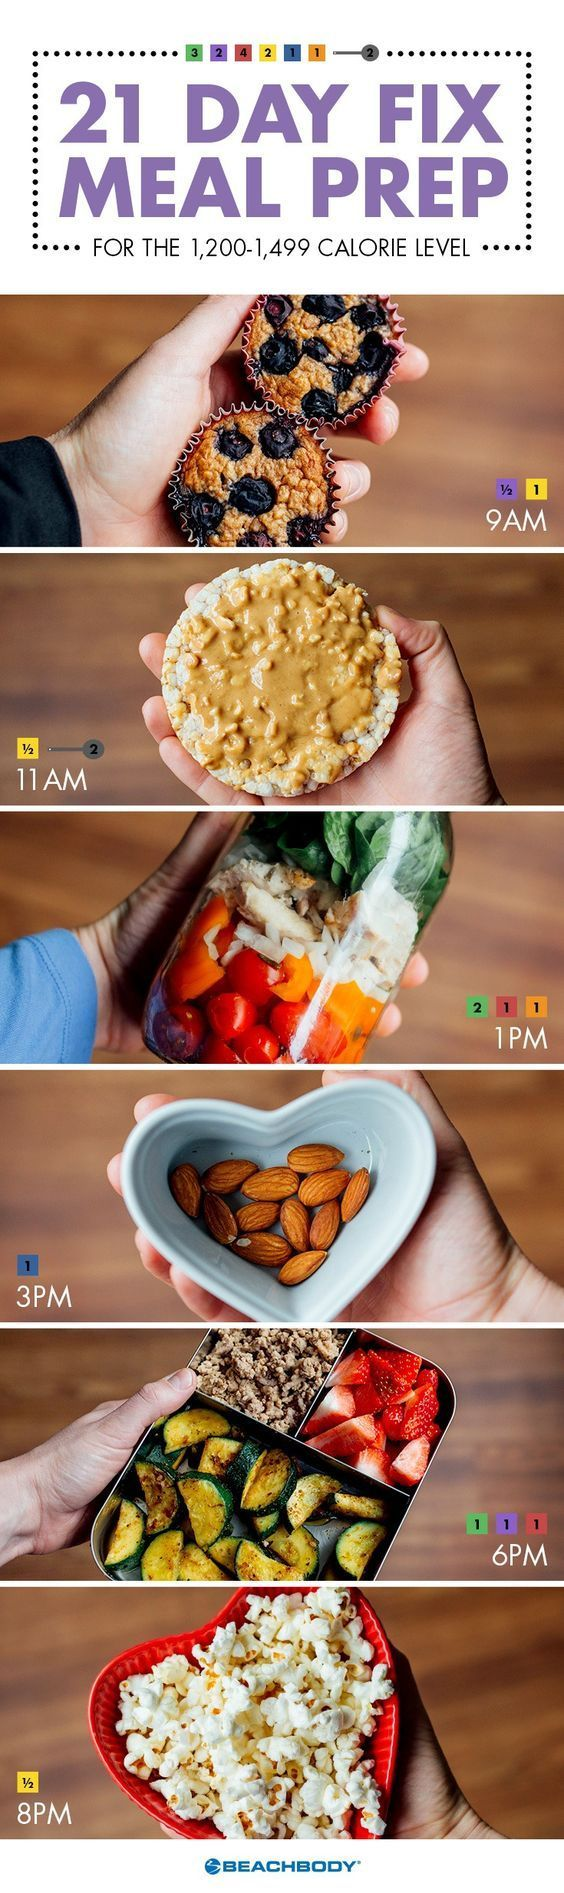 Use these shortcuts and simple menus to inspire your own meal prep. Find the meal prep for your calorie level! // healthy recipes // meal preps // meal planning // healthy eating // health // fitness // fitspo // 21 Day Fix // Meal Prep // diet // nutrition // Inspiration // recipe // recipes // Beachbody // BeachbodyBlog.com